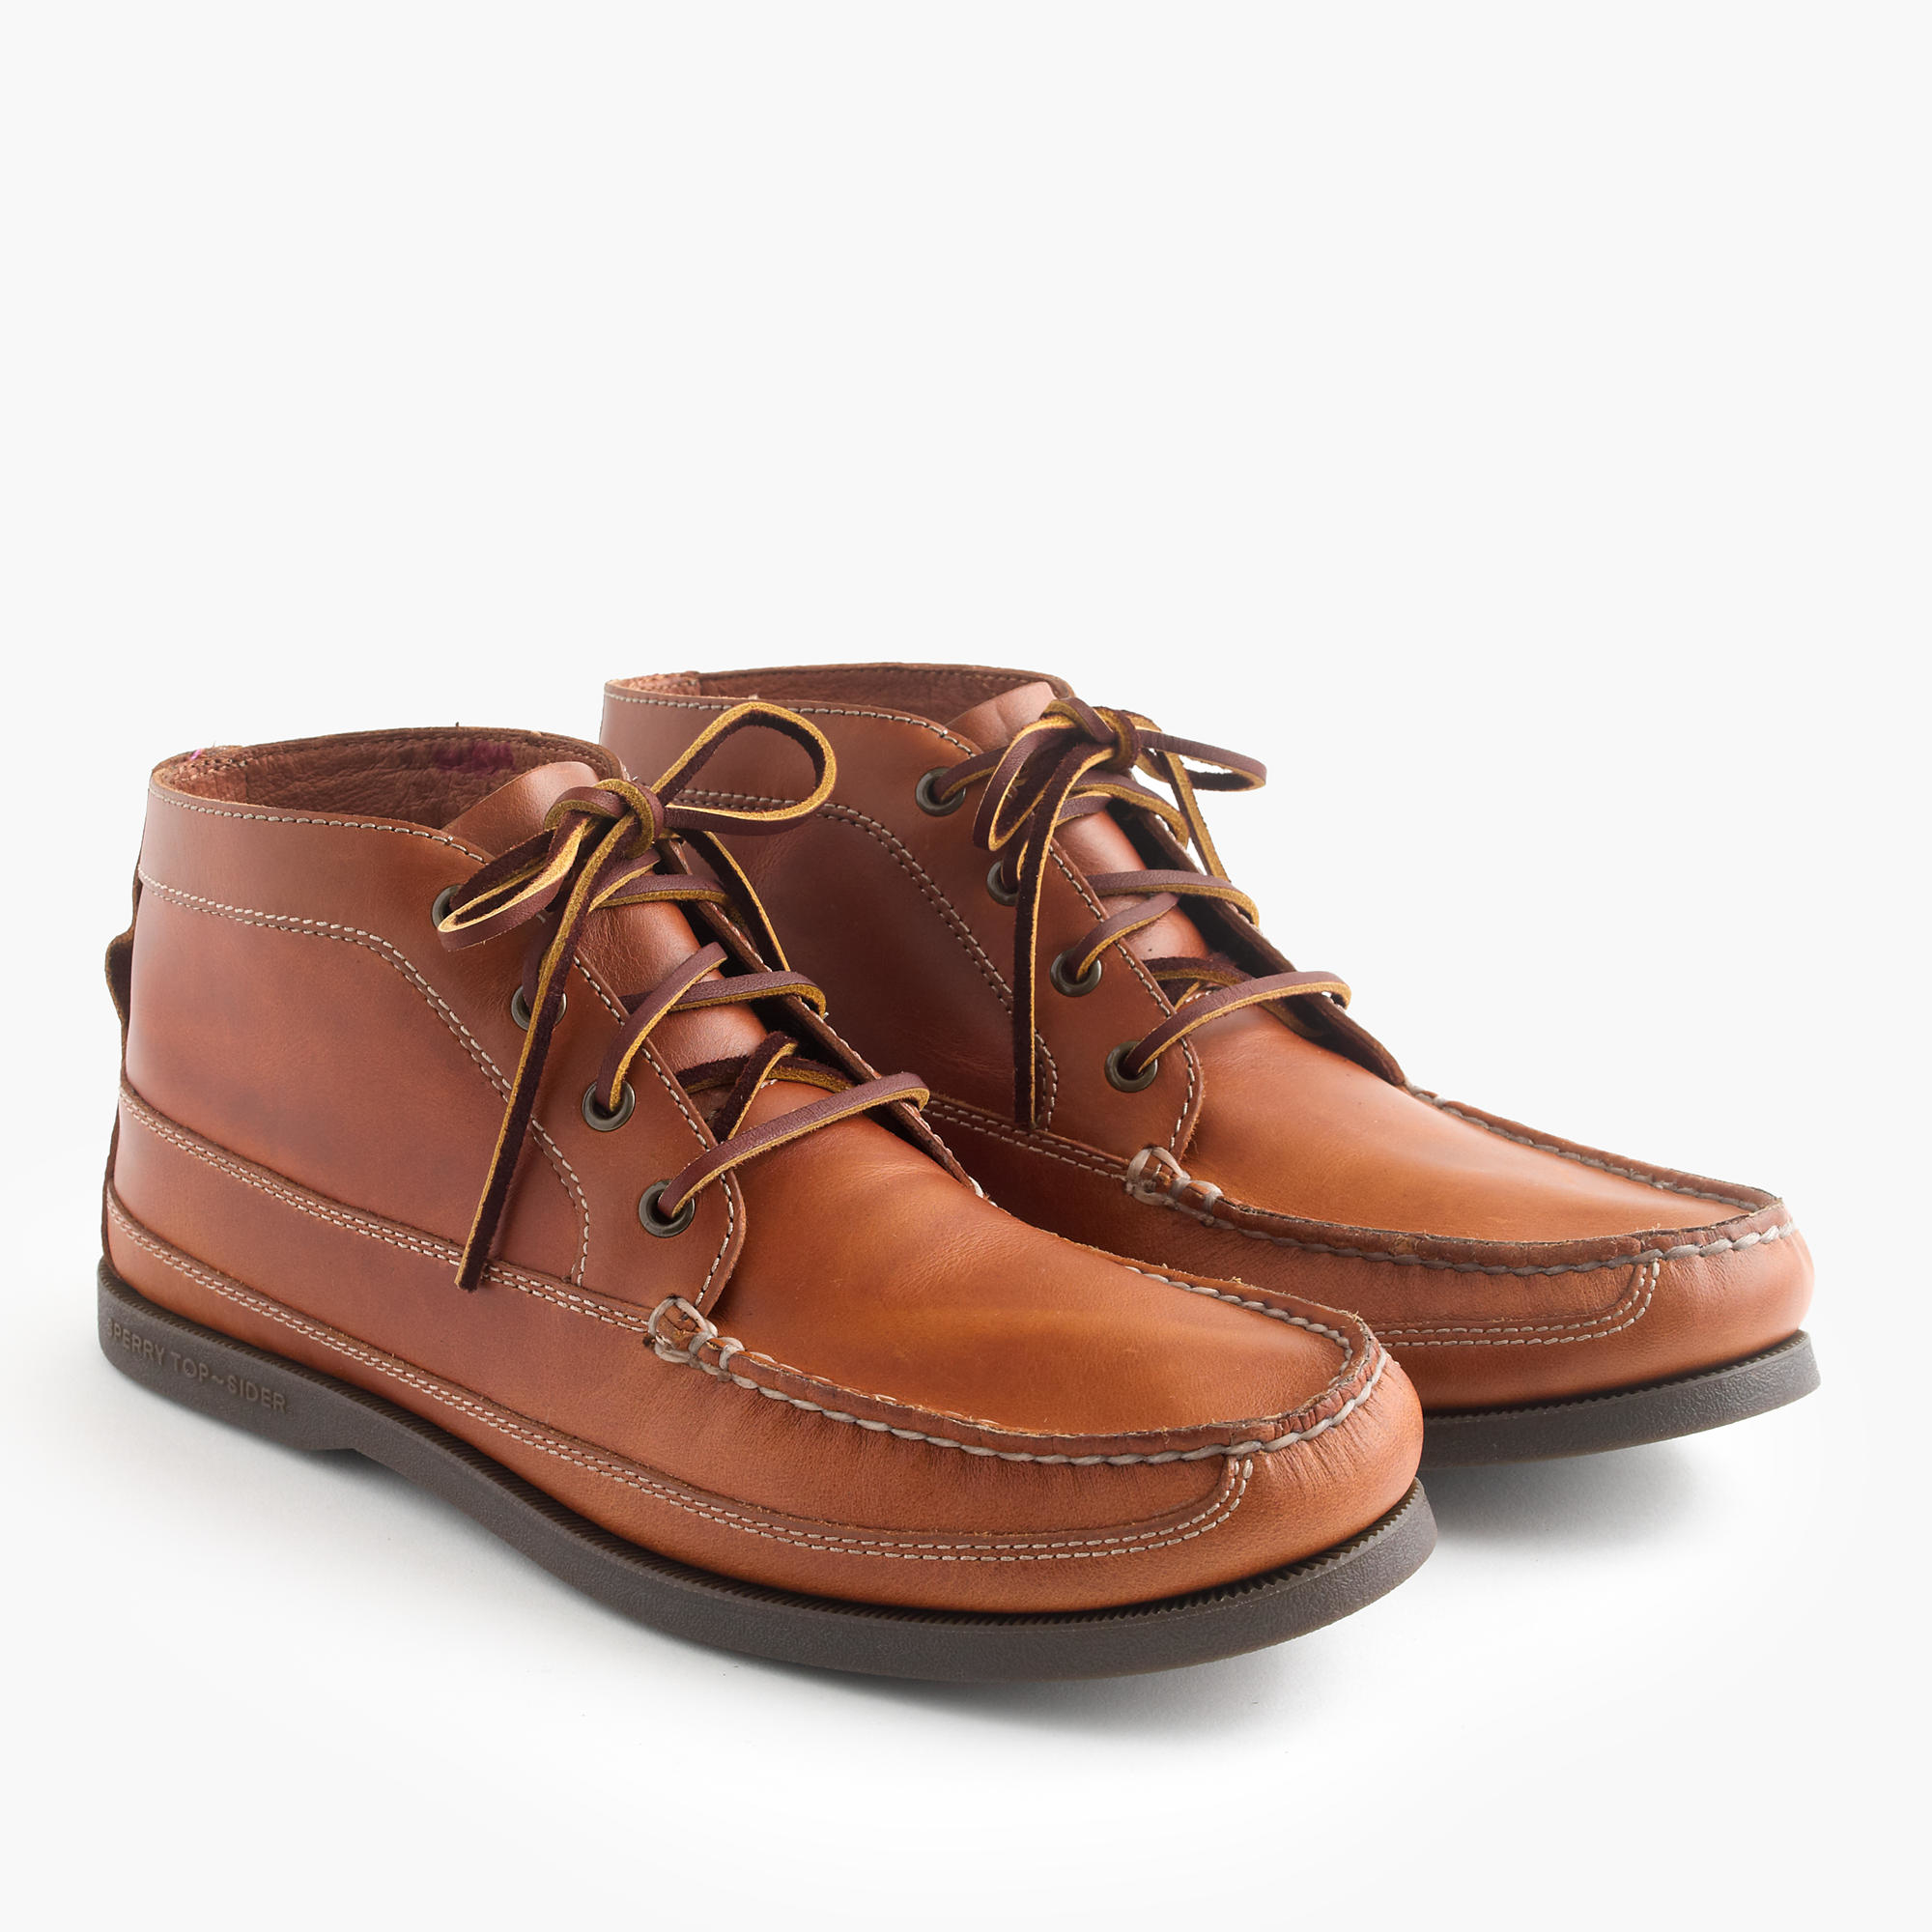 sperry top sider s sperry leather chukka boots in